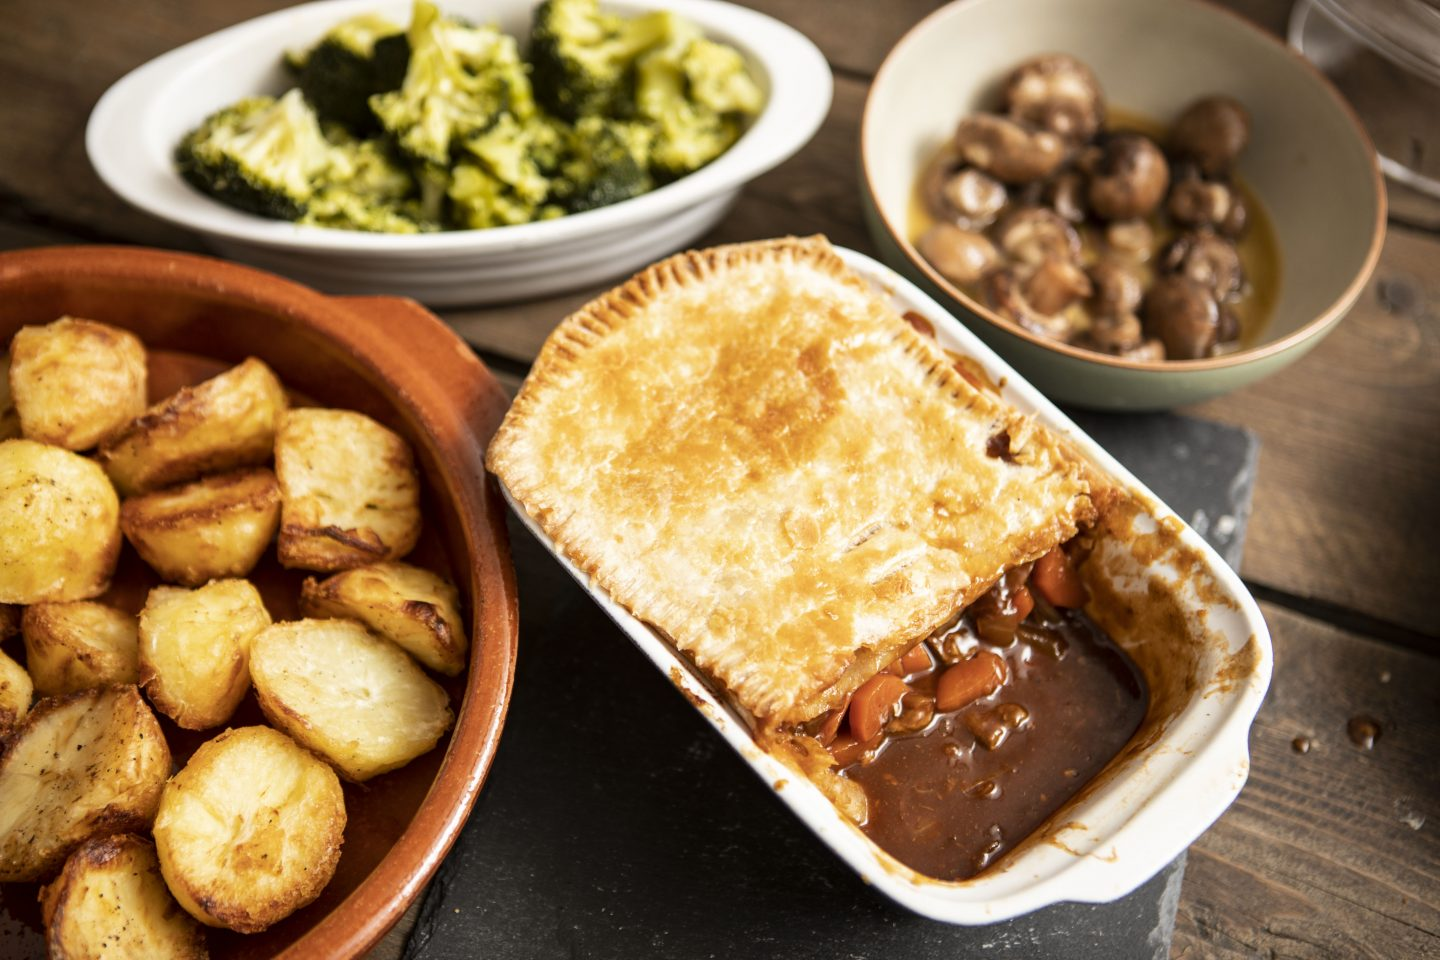 Gluten Free Steak & Ale Pie